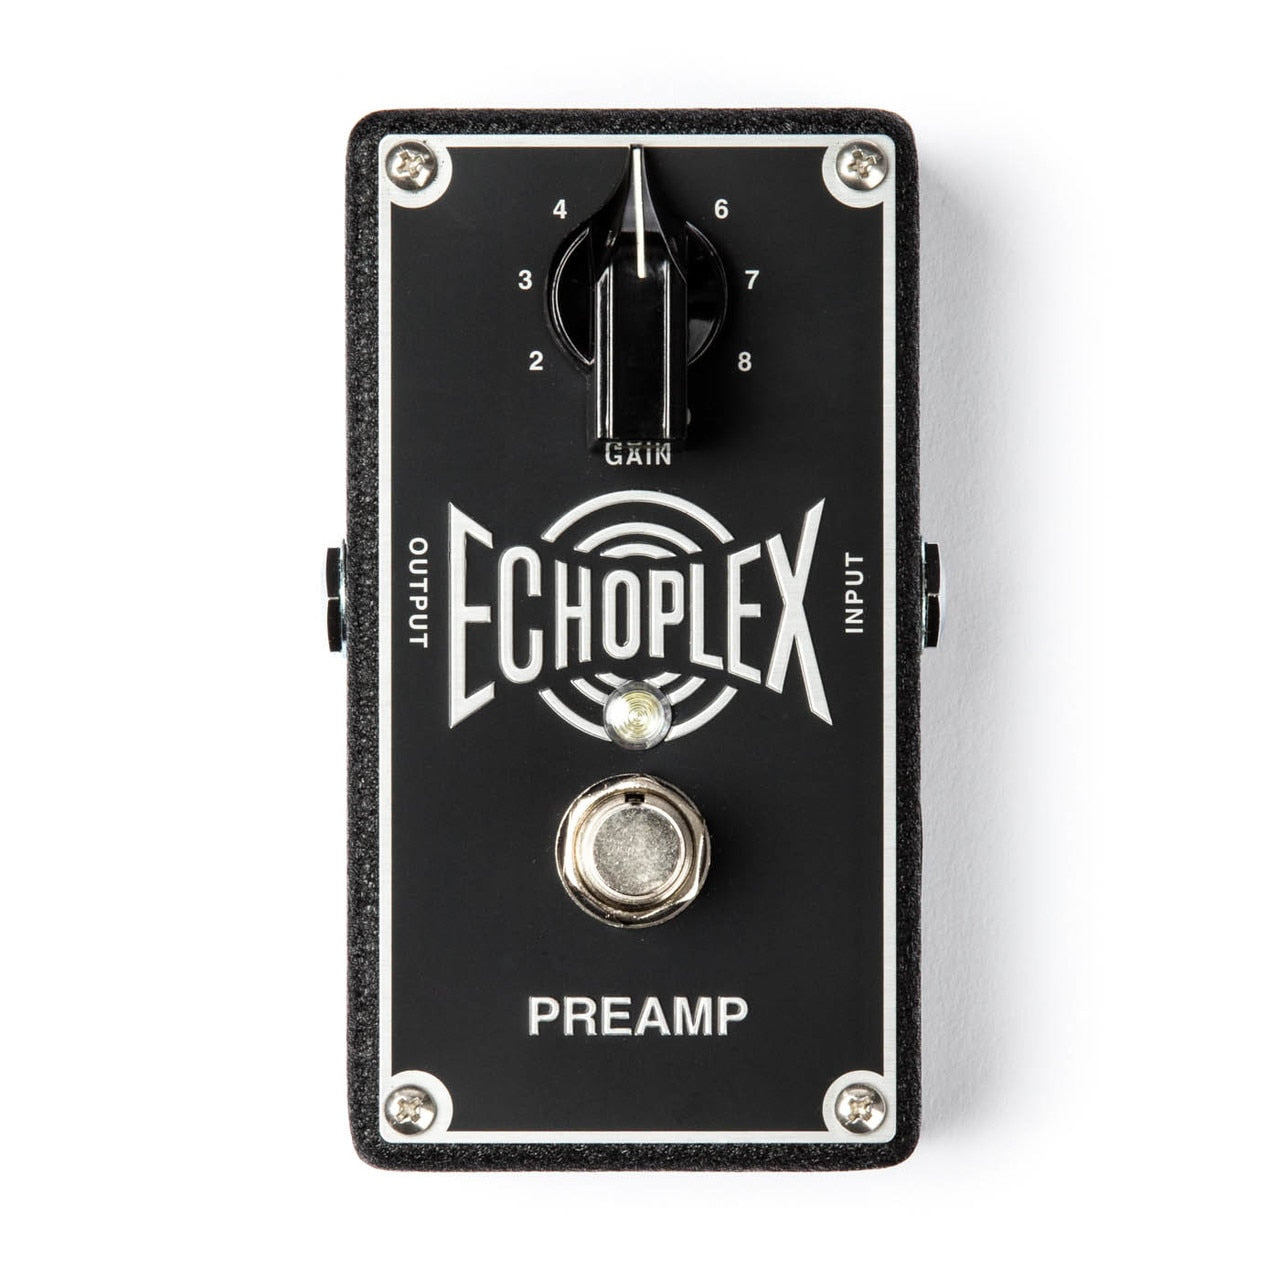 EP101 Echoplex Preamp - Free Shipping